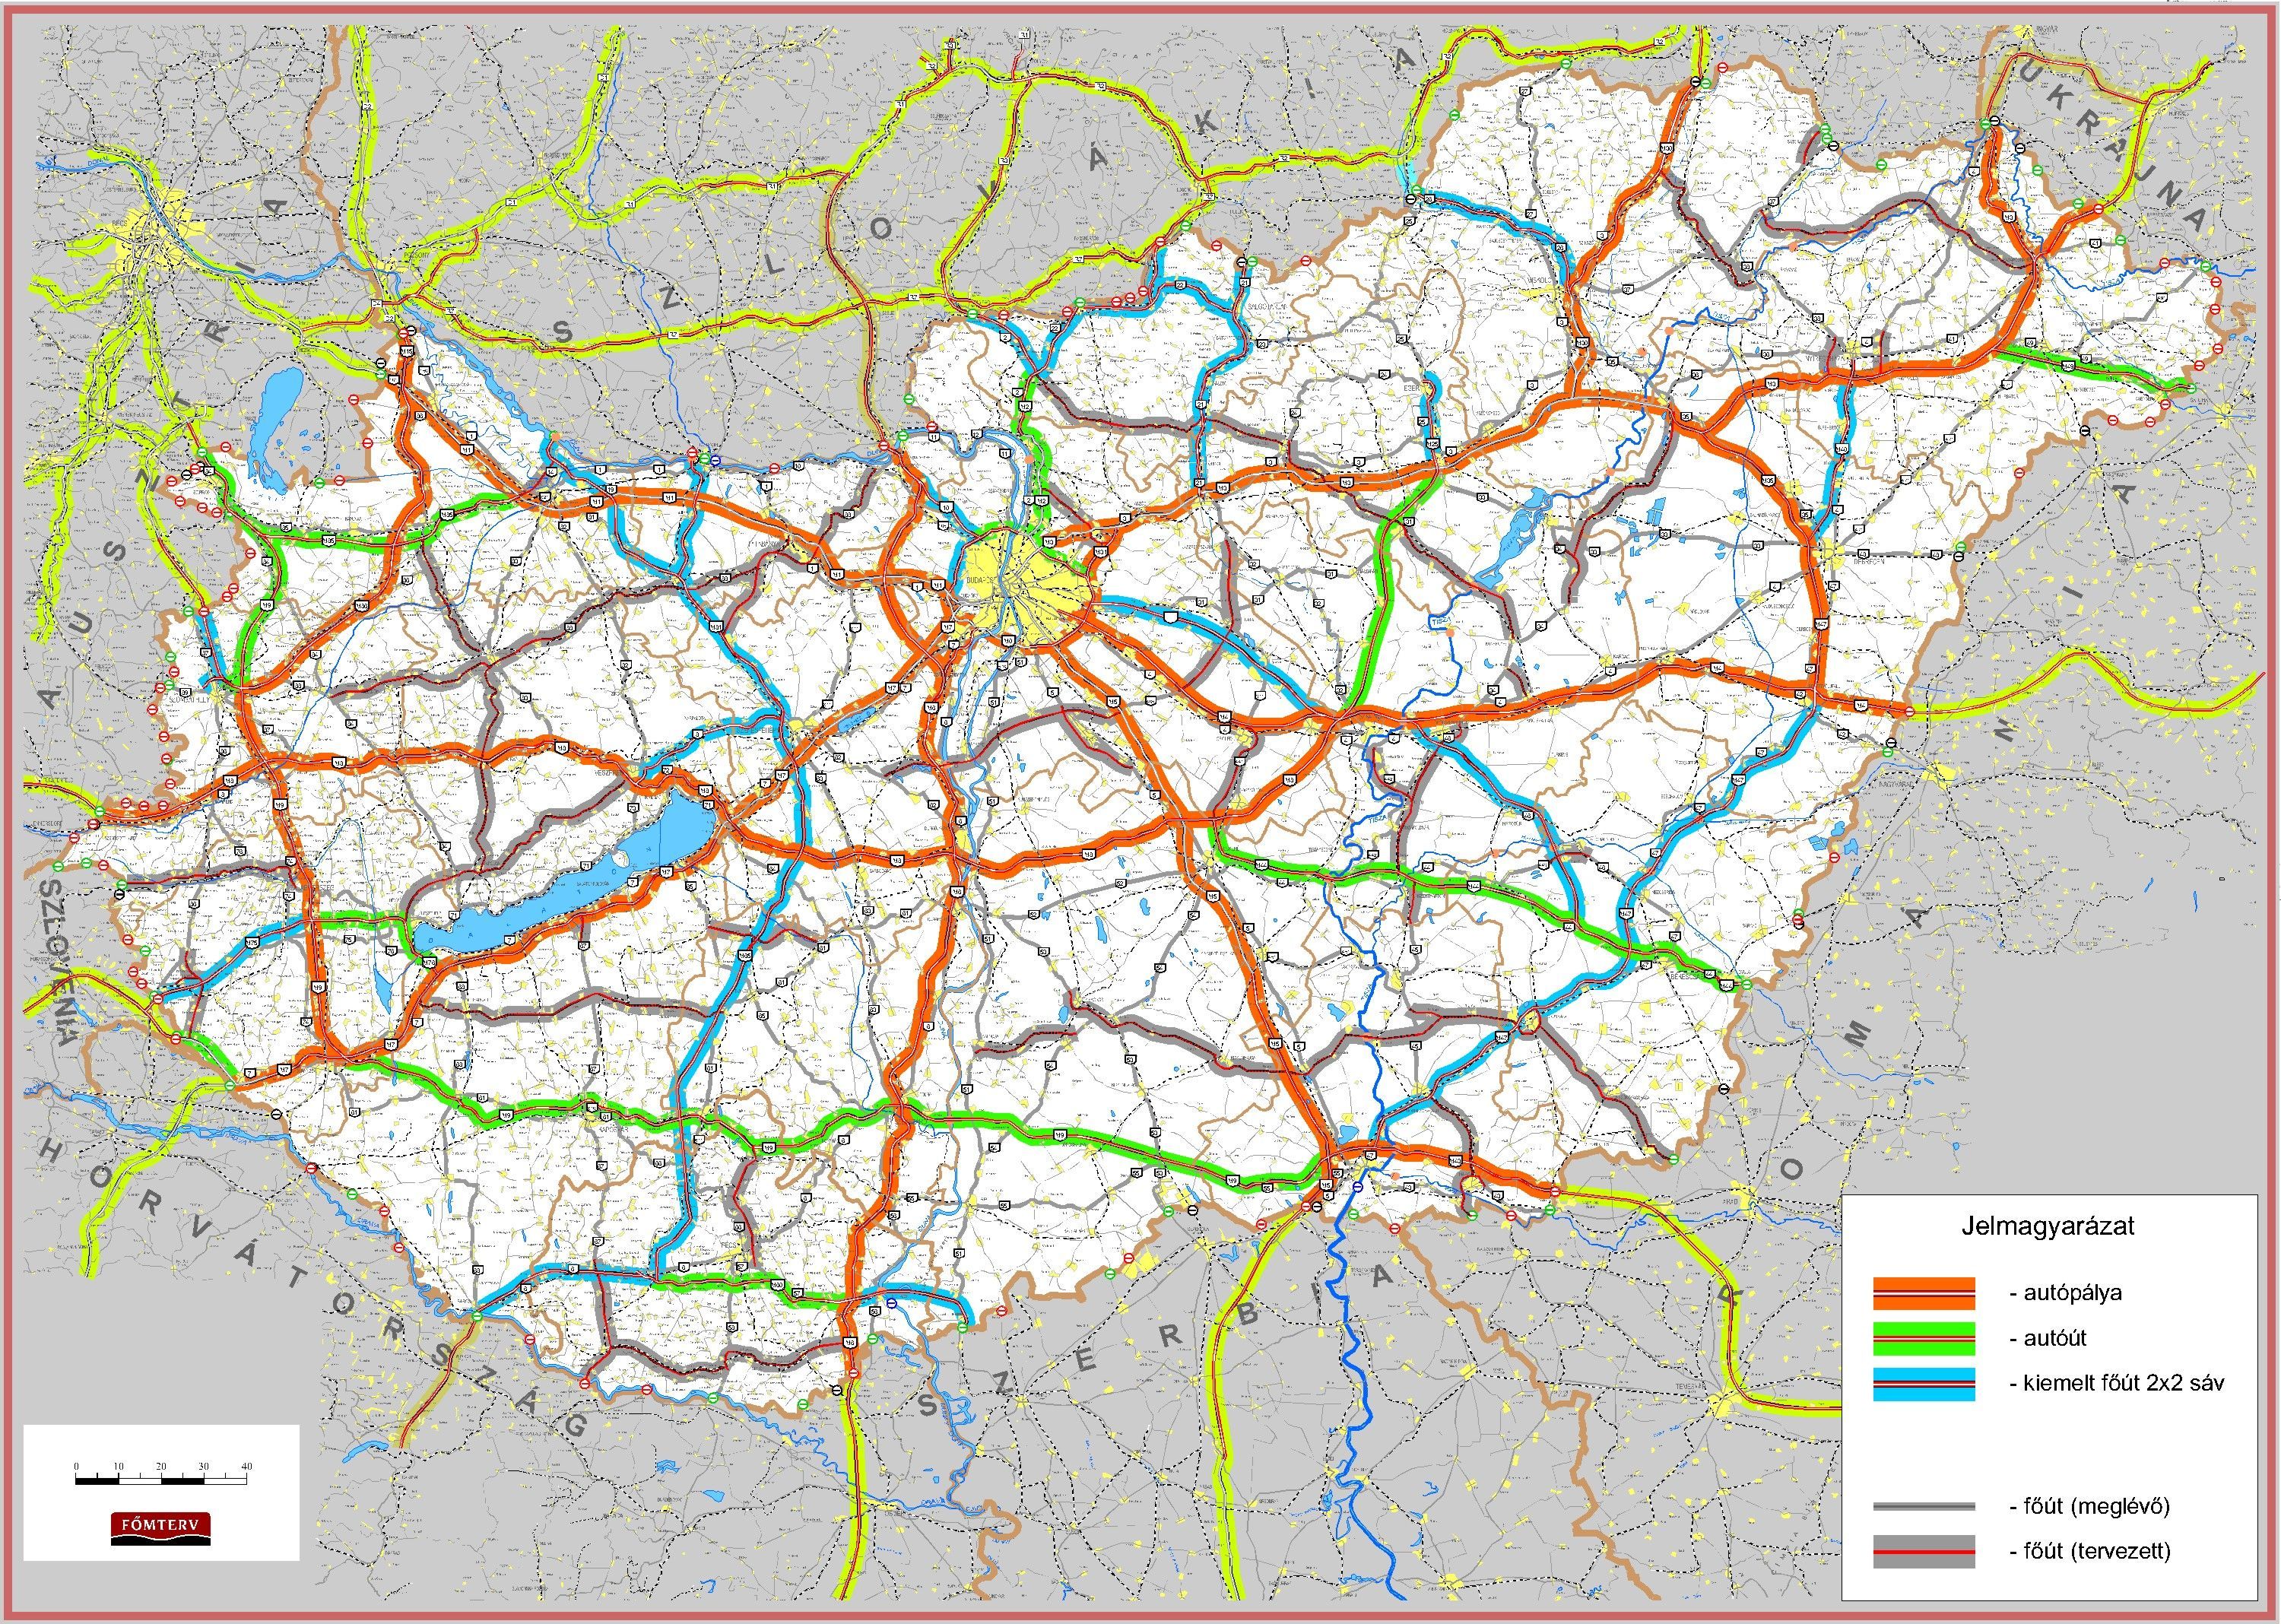 Magyarorszag Autos Terkep Yahoo Image Search Results Map